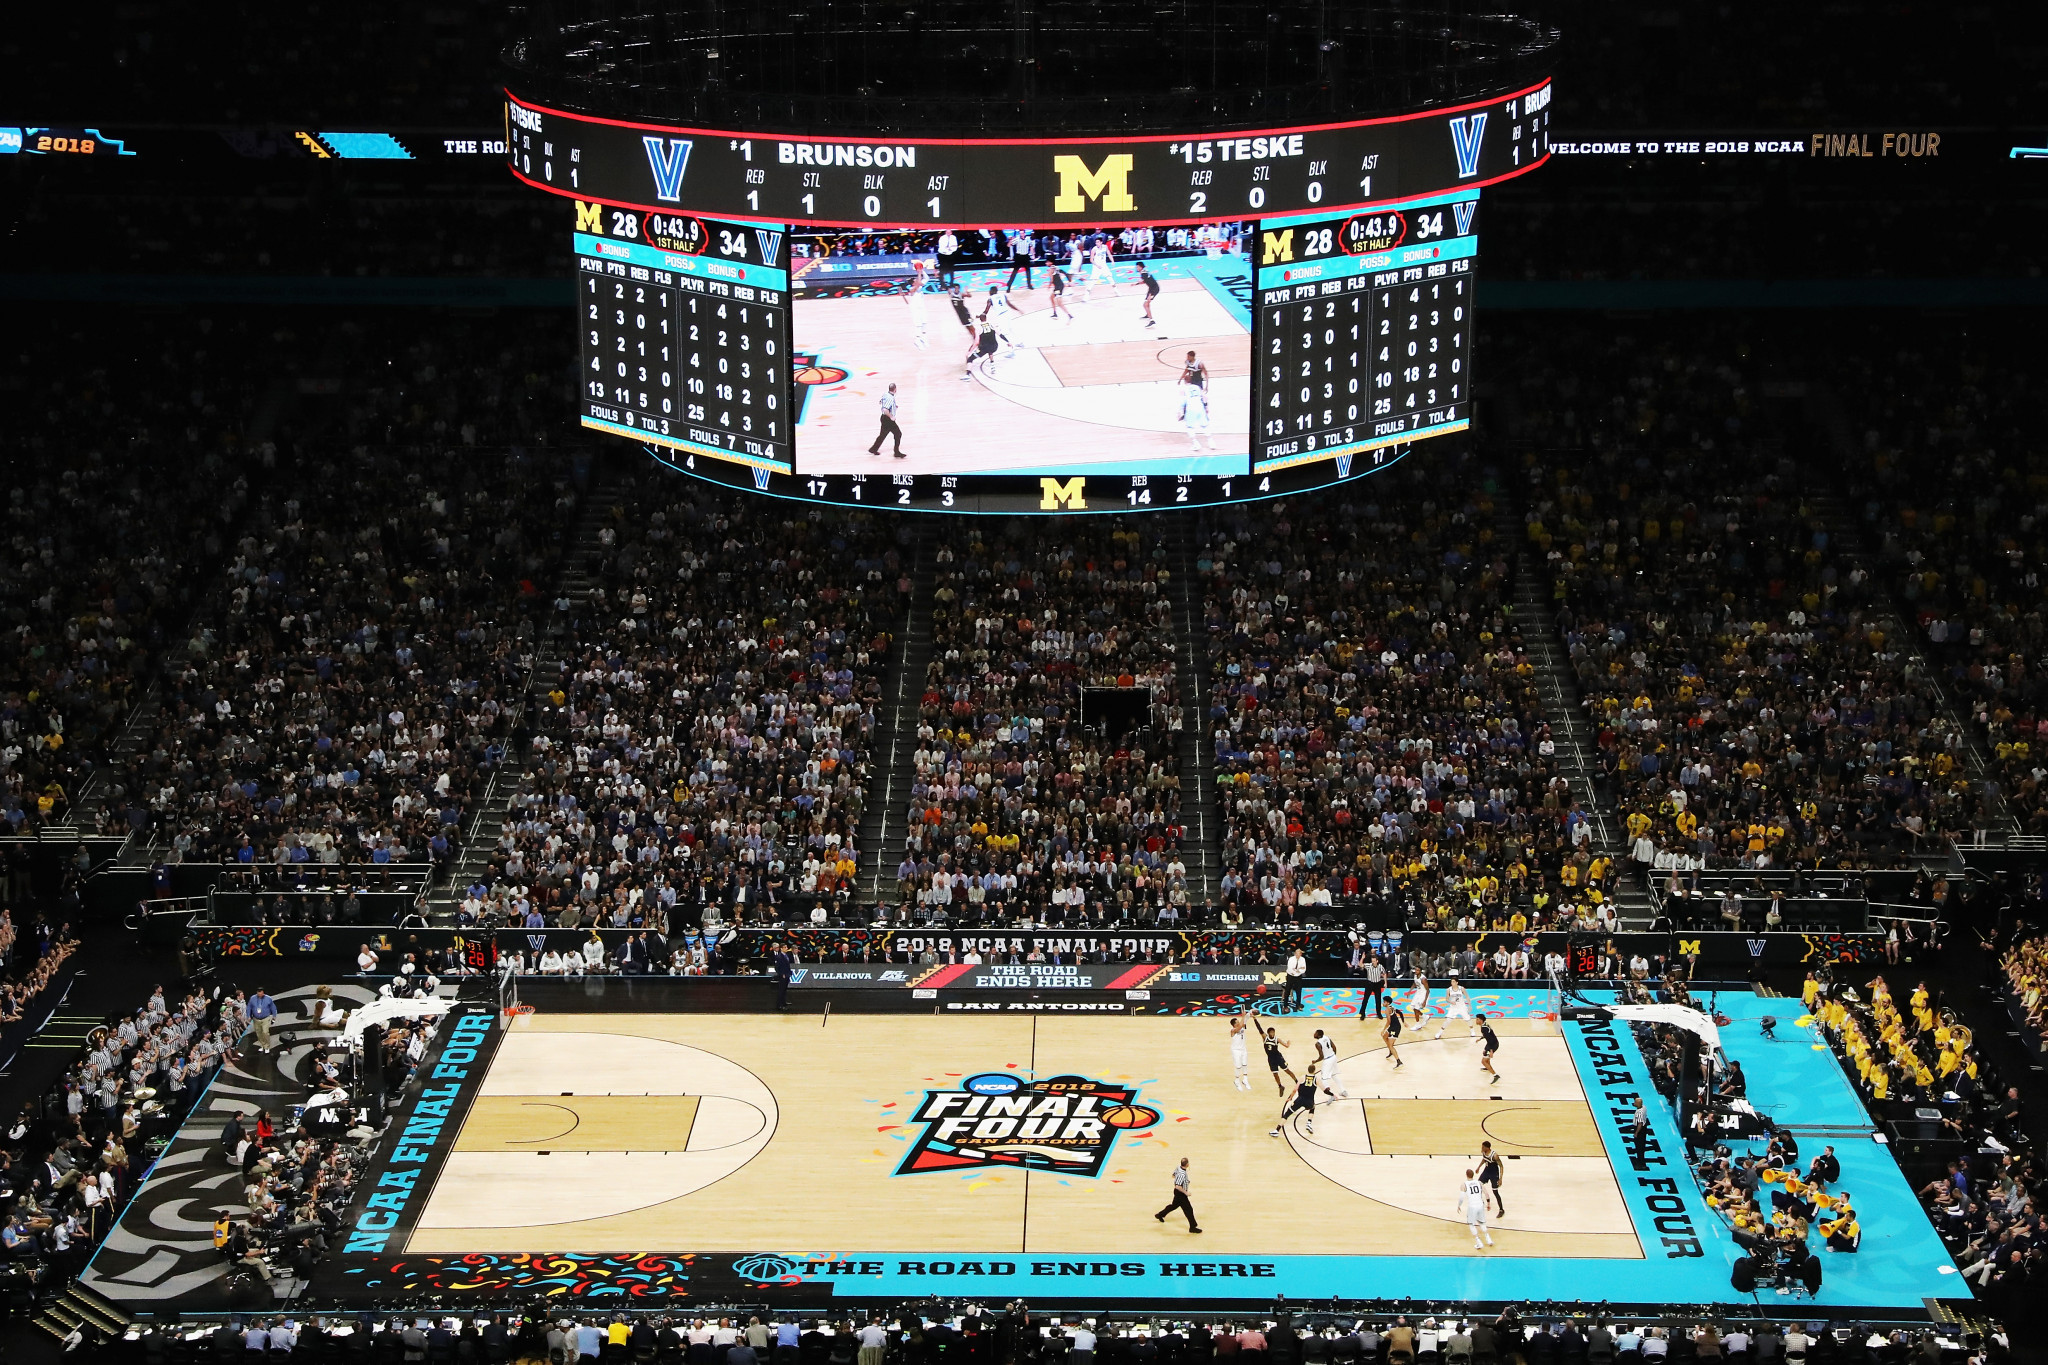 BodyArmor will be the official sponsor of NCAA Championships, including basketball's